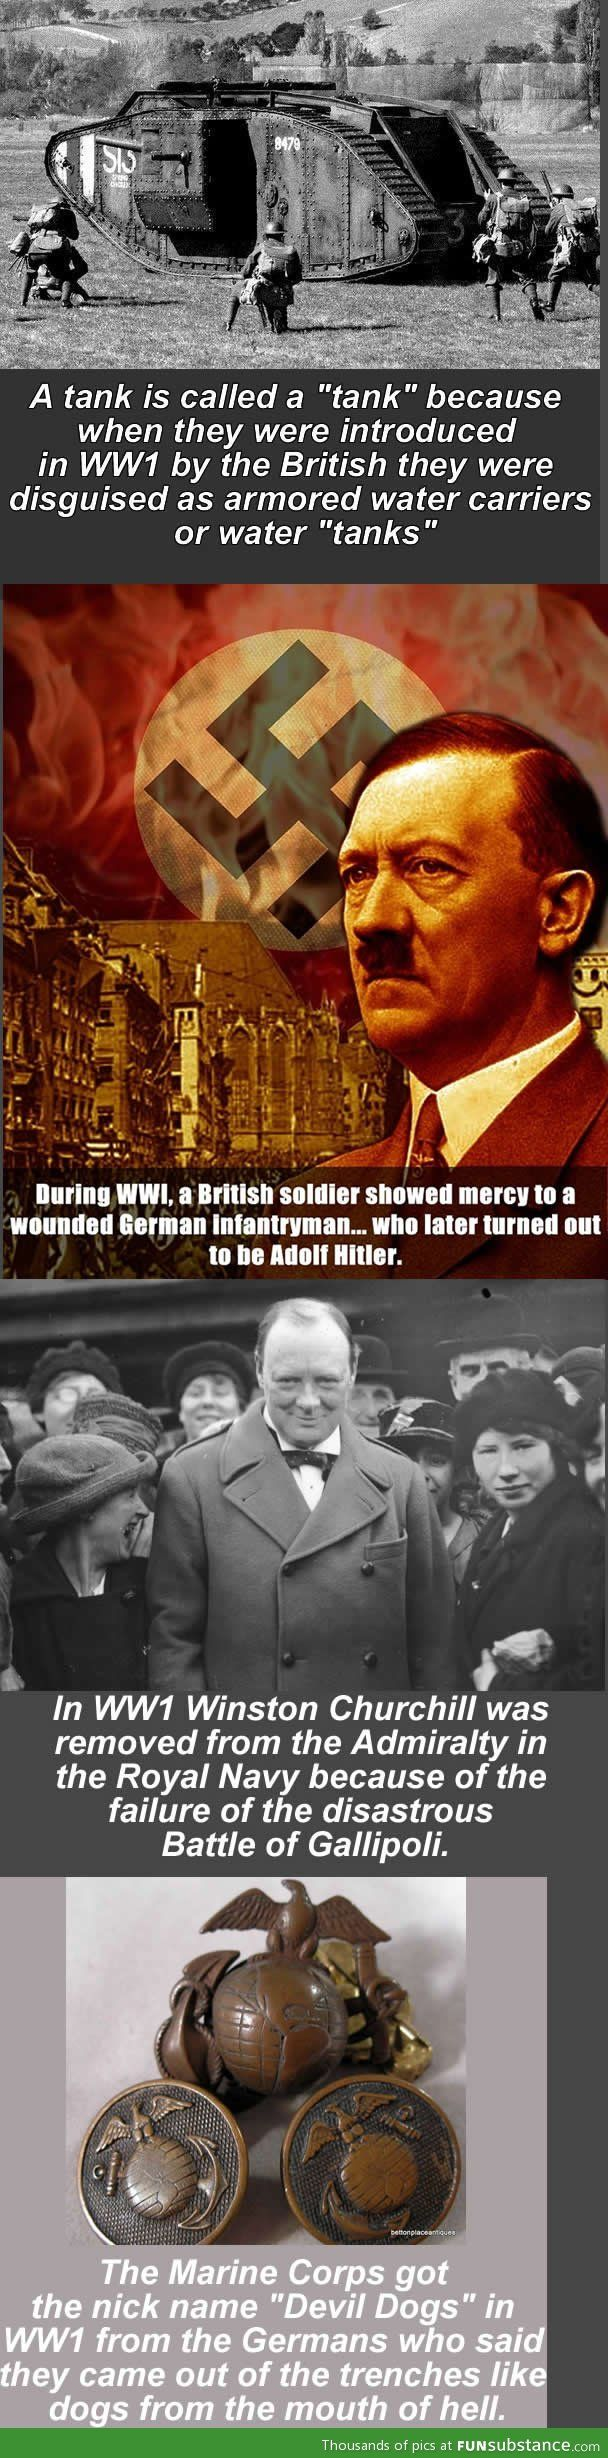 World War 1 Facts #history